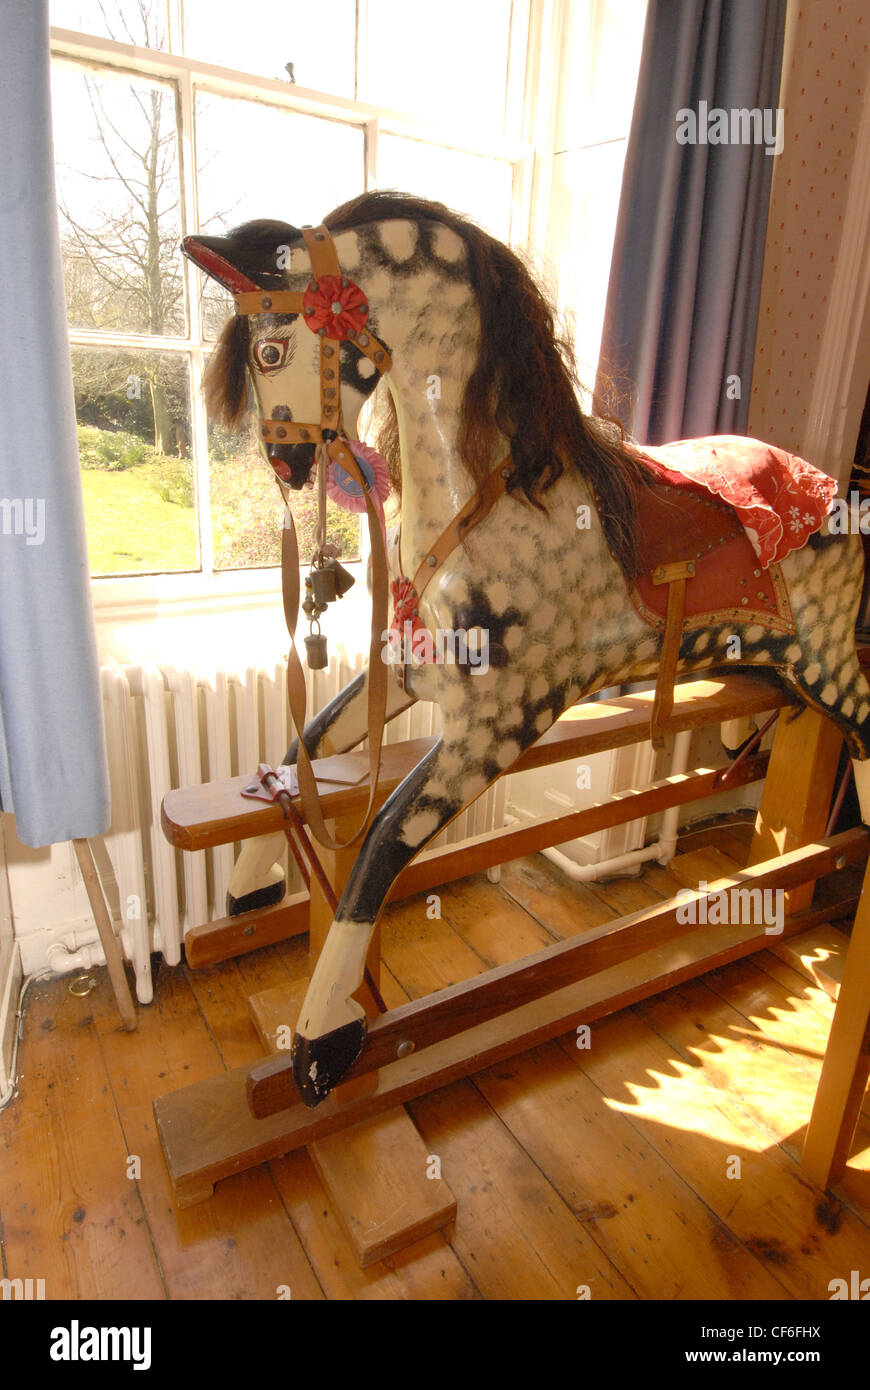 An Old Fashioned Wooden Rocking Horse With Dappled Paint Work Stock